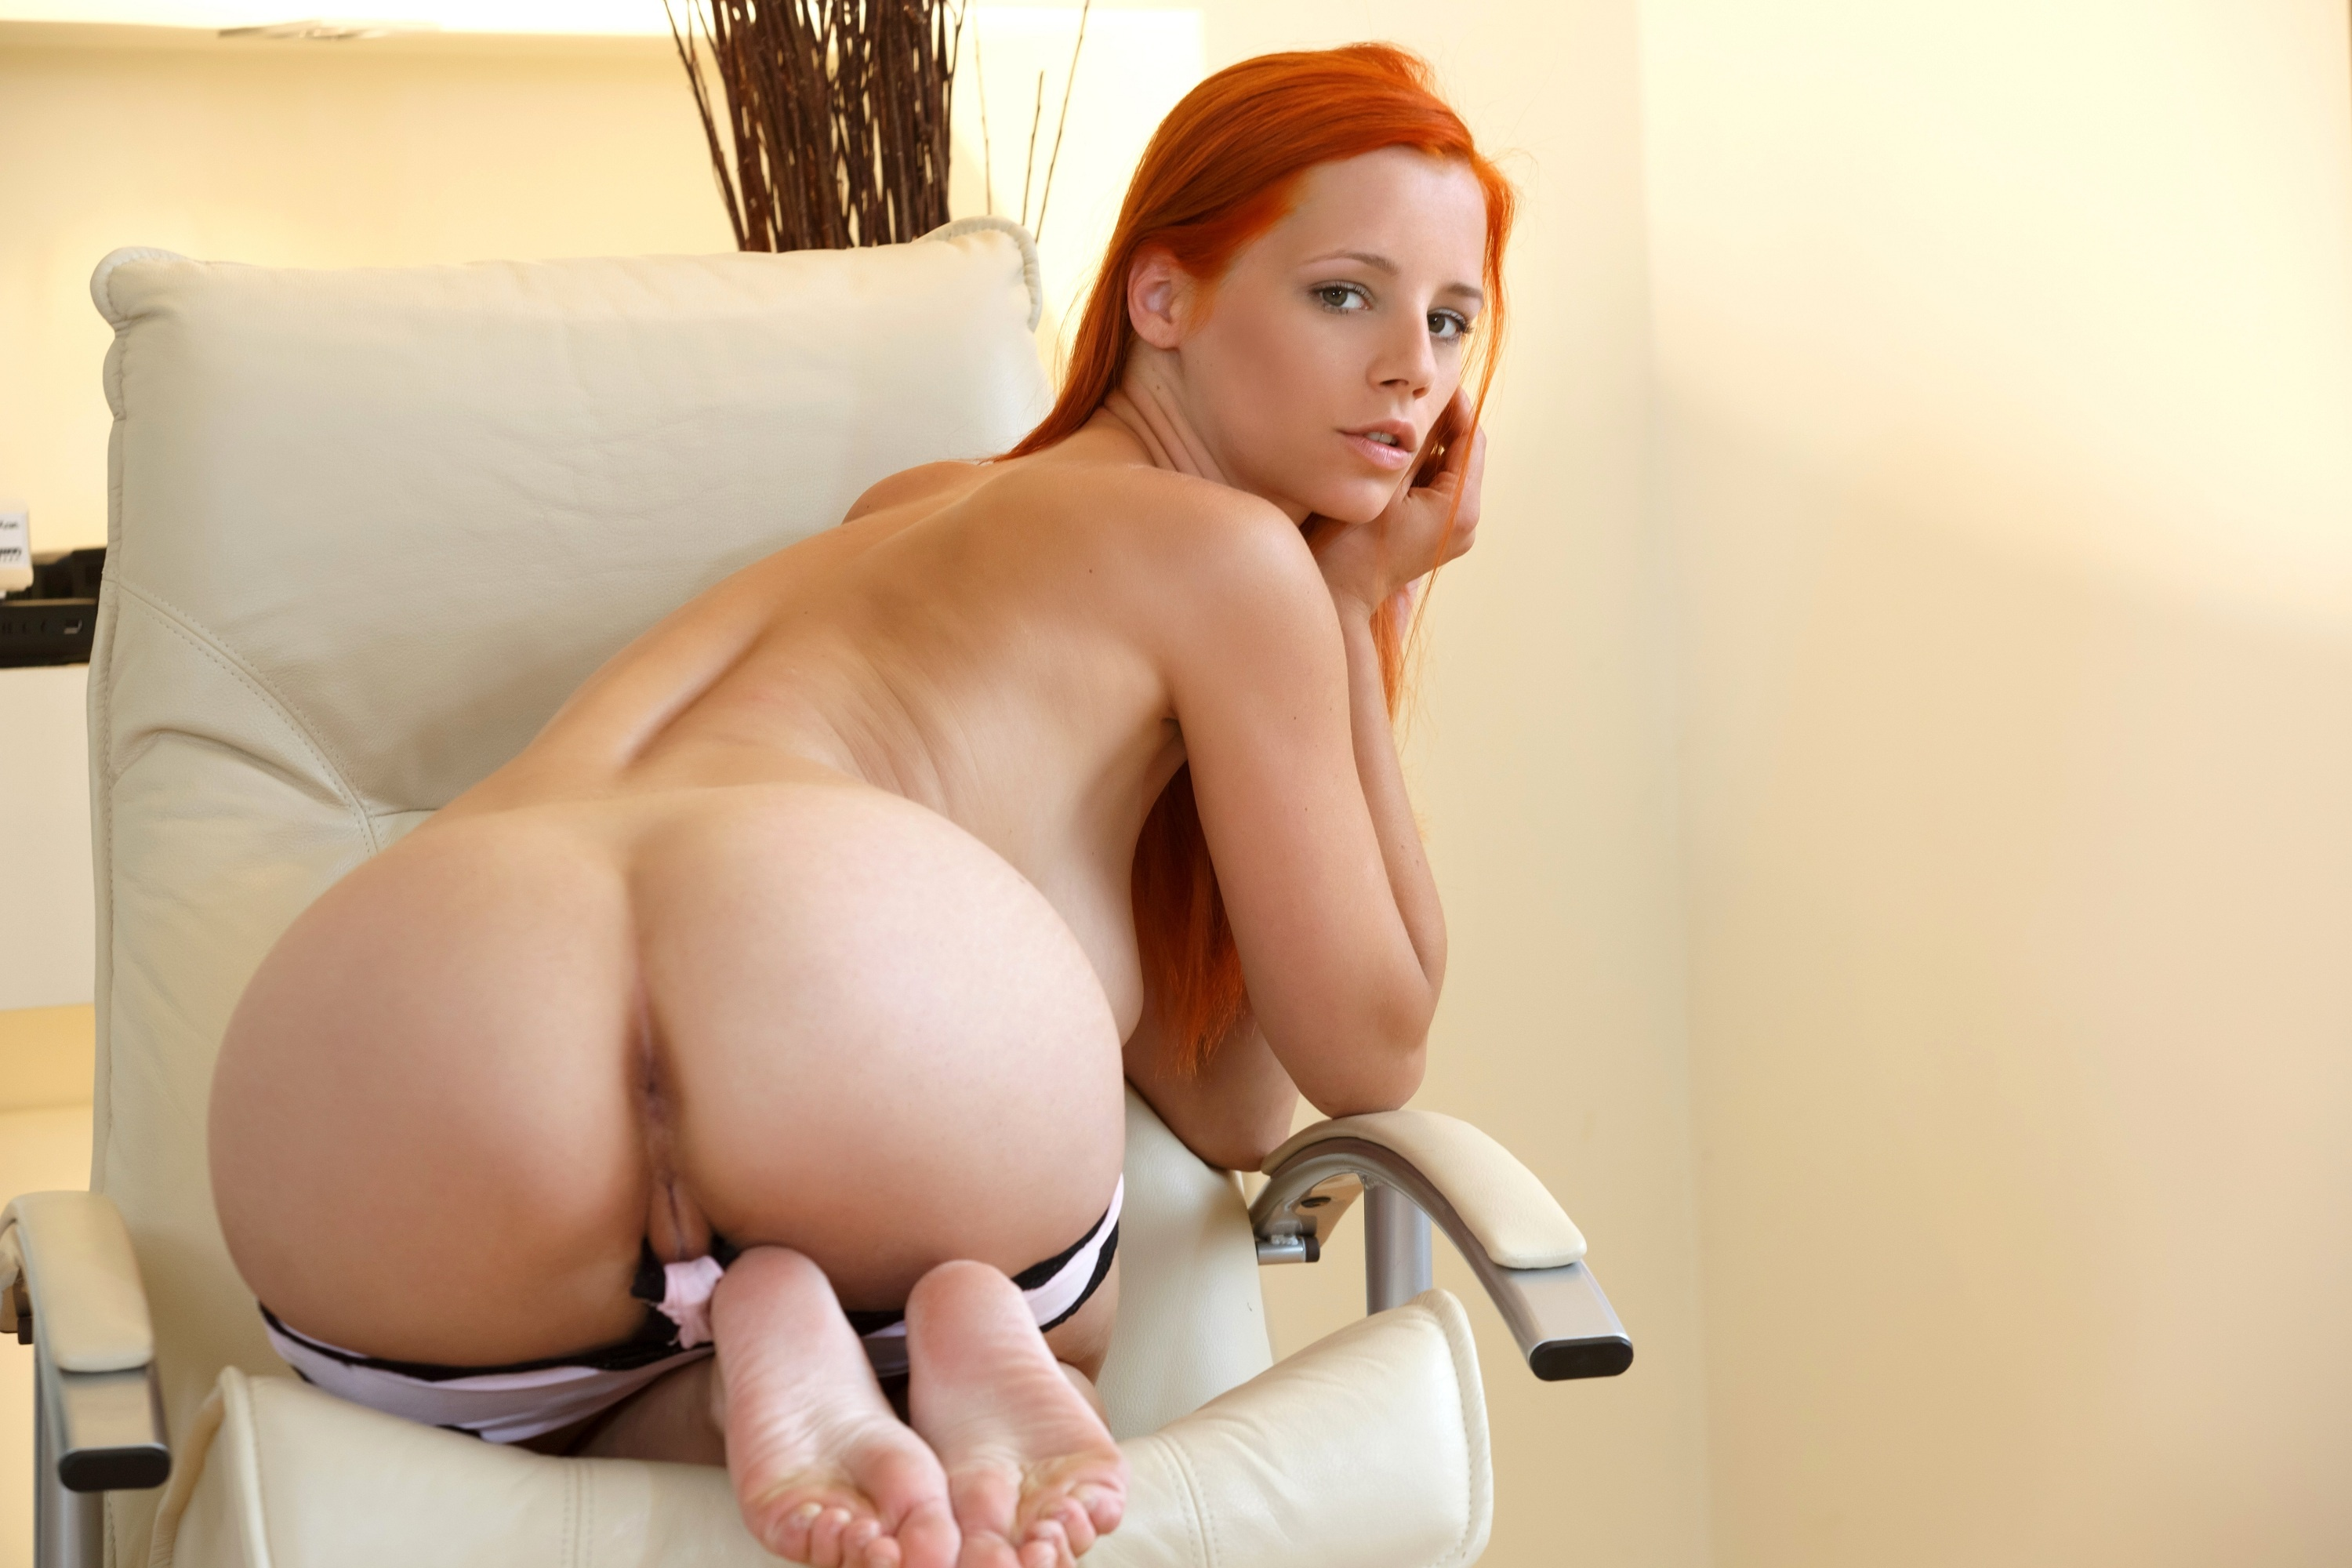 Top hottest redhead porn stars of all time